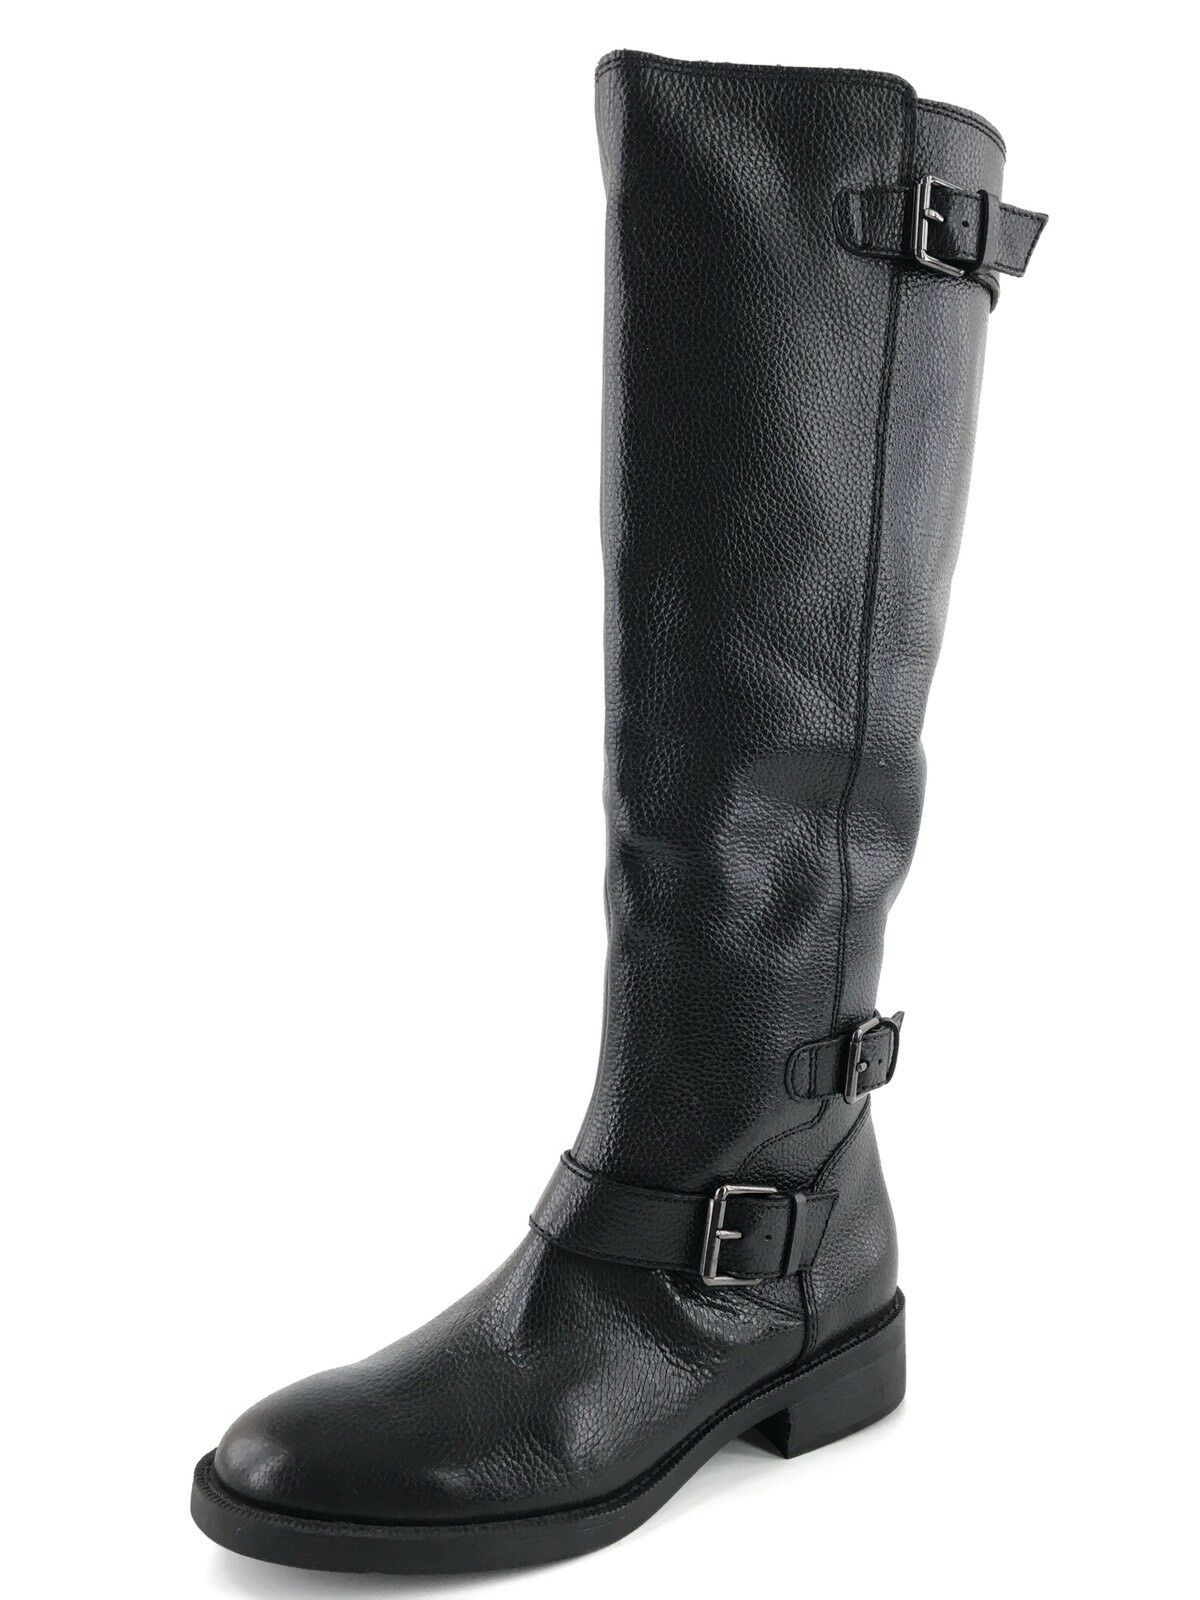 New Enzo Angiolini Sayin Black Leather Knee High Riding Boots Womens Size 7 M *